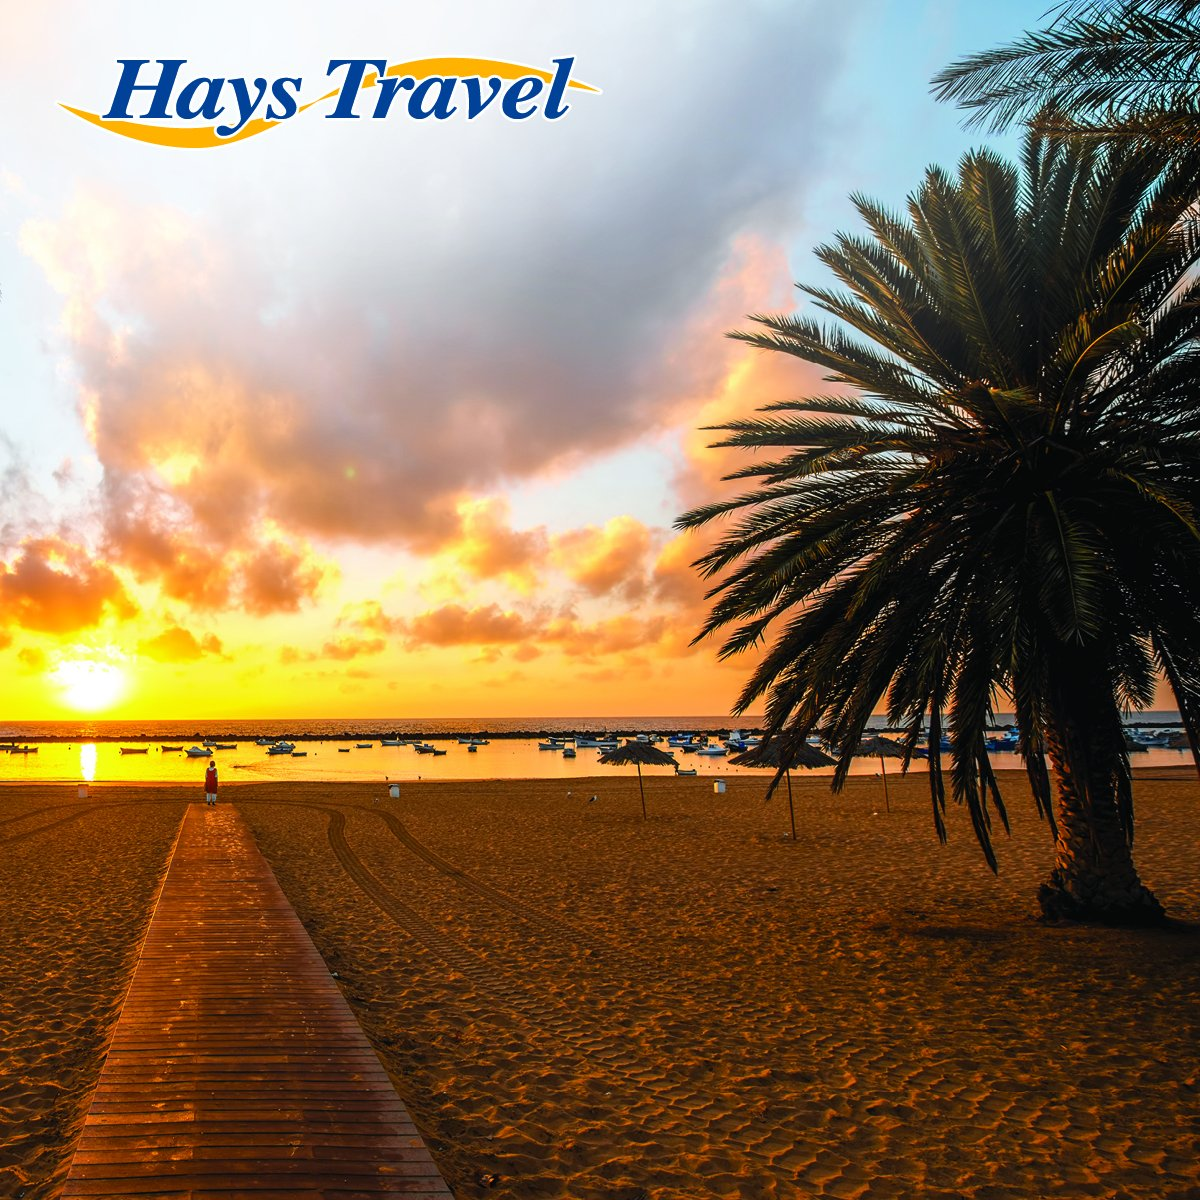 hays travel - photo #14